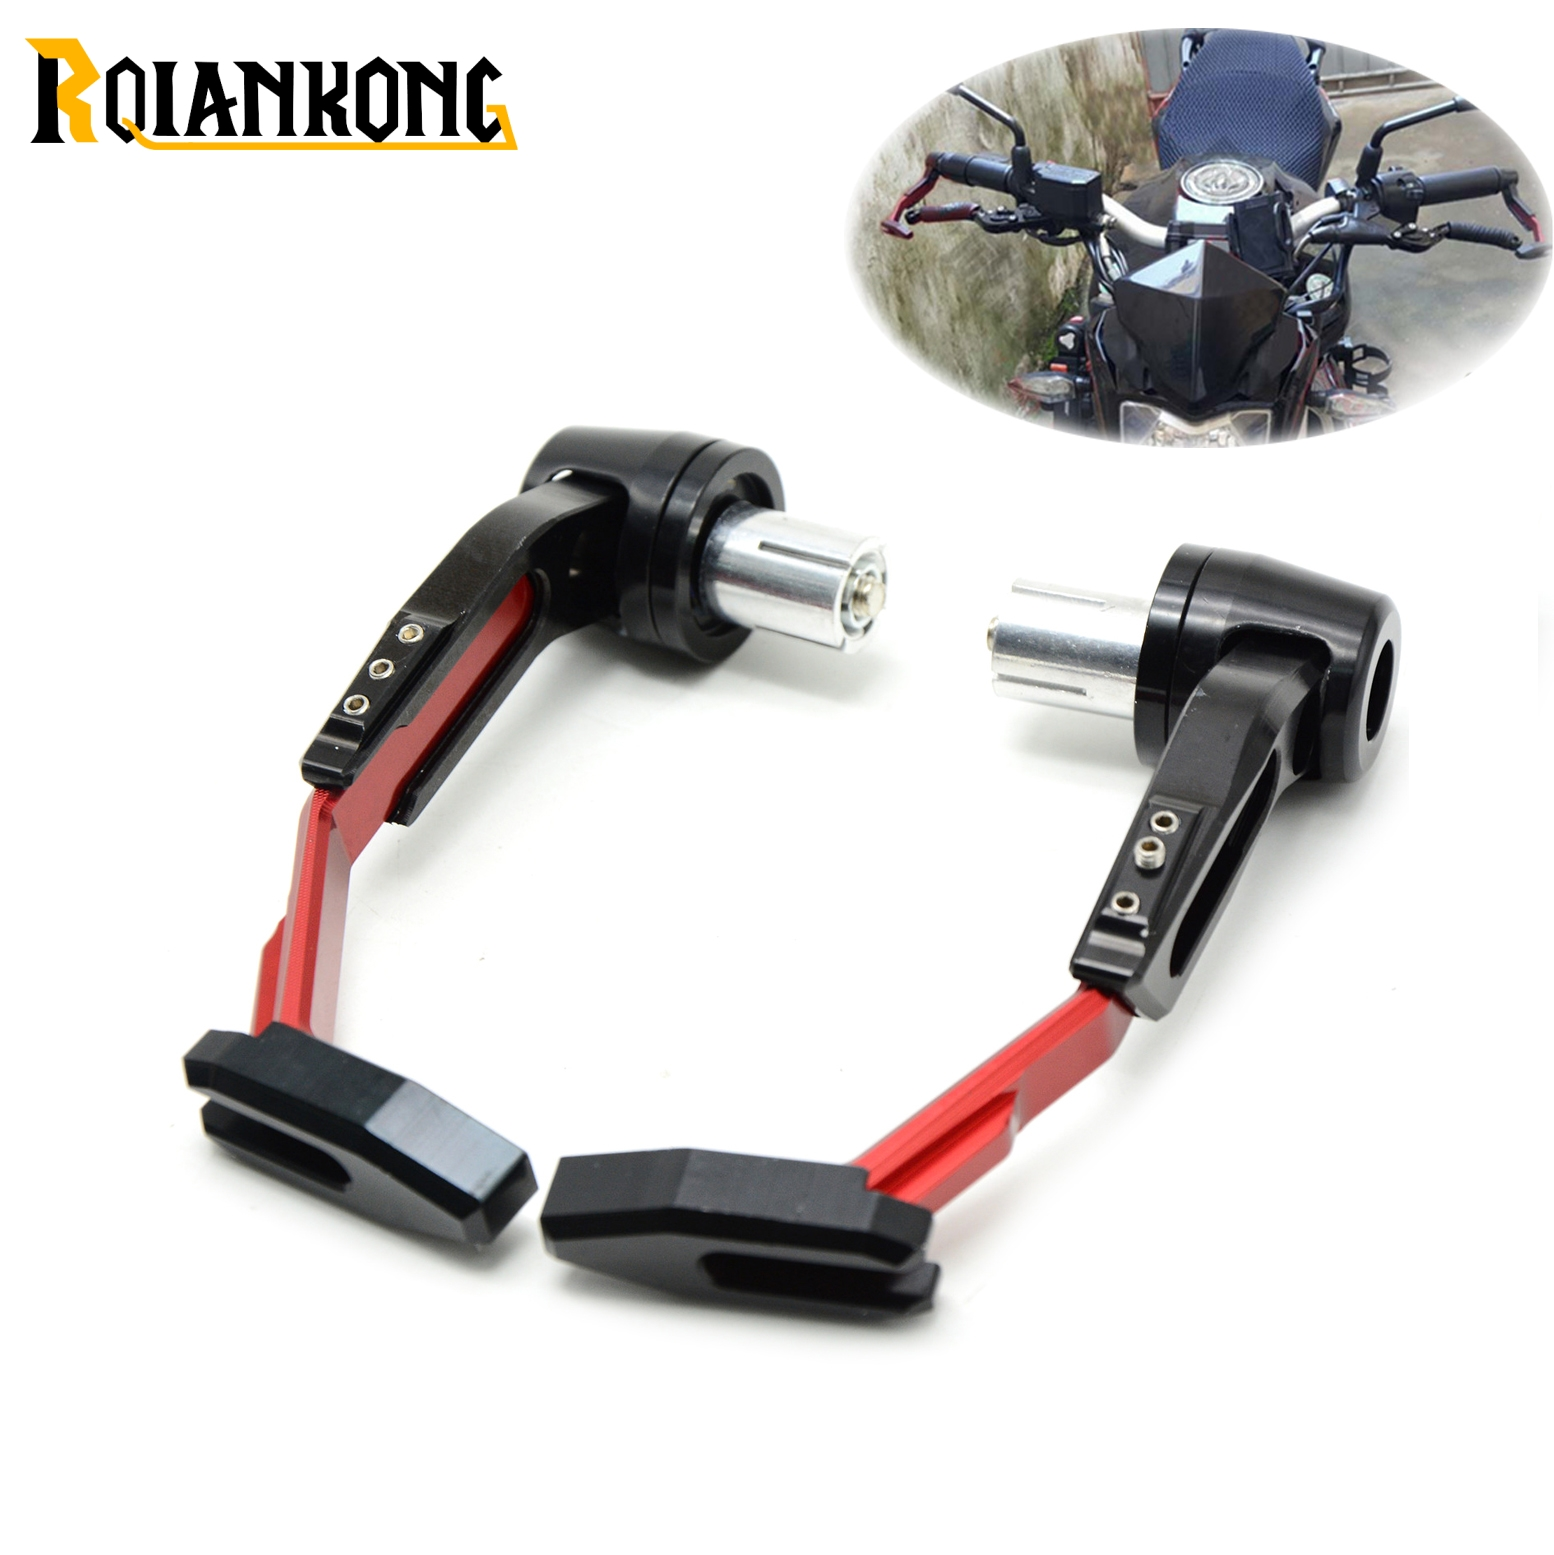 Universal 7/822mm Motorcycle Handlebar Clutch Brake Lever Protect Guard for BMW R1200ST S1000 S1000XR S1000 RR XR 1000XR for 22mm 7 8 handlebar motorcycle dirt bike universal stunt clutch lever assembly cnc aluminum